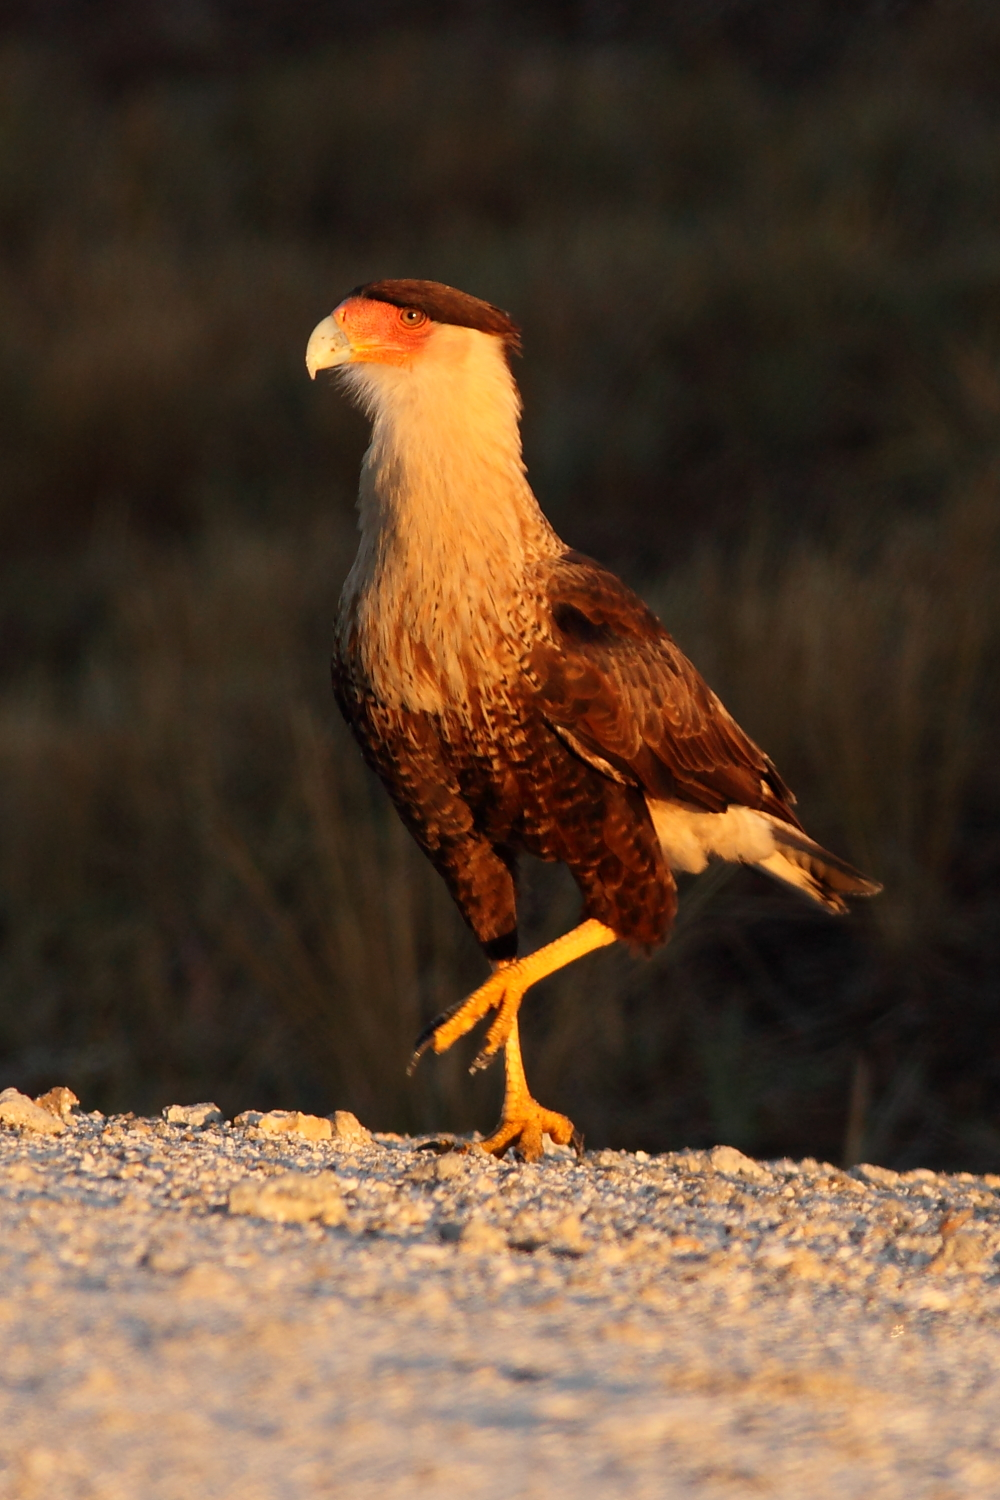 crested caracaras in south central florida by anna fasoli